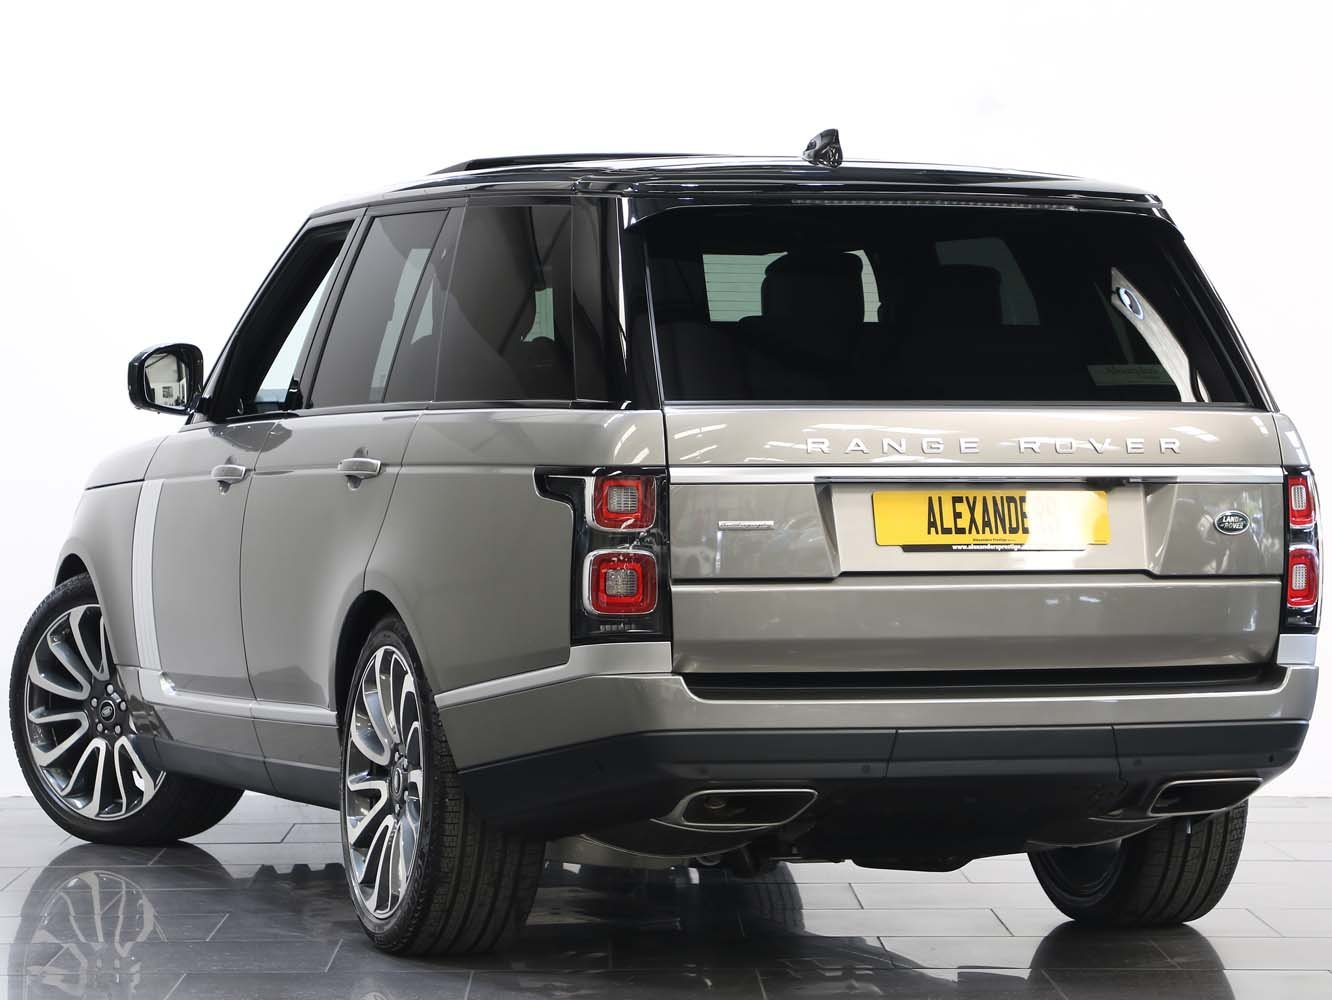 2019 19 19 RANGE ROVER AUTOBIOGRAPHY AUTO For Sale (picture 3 of 6)